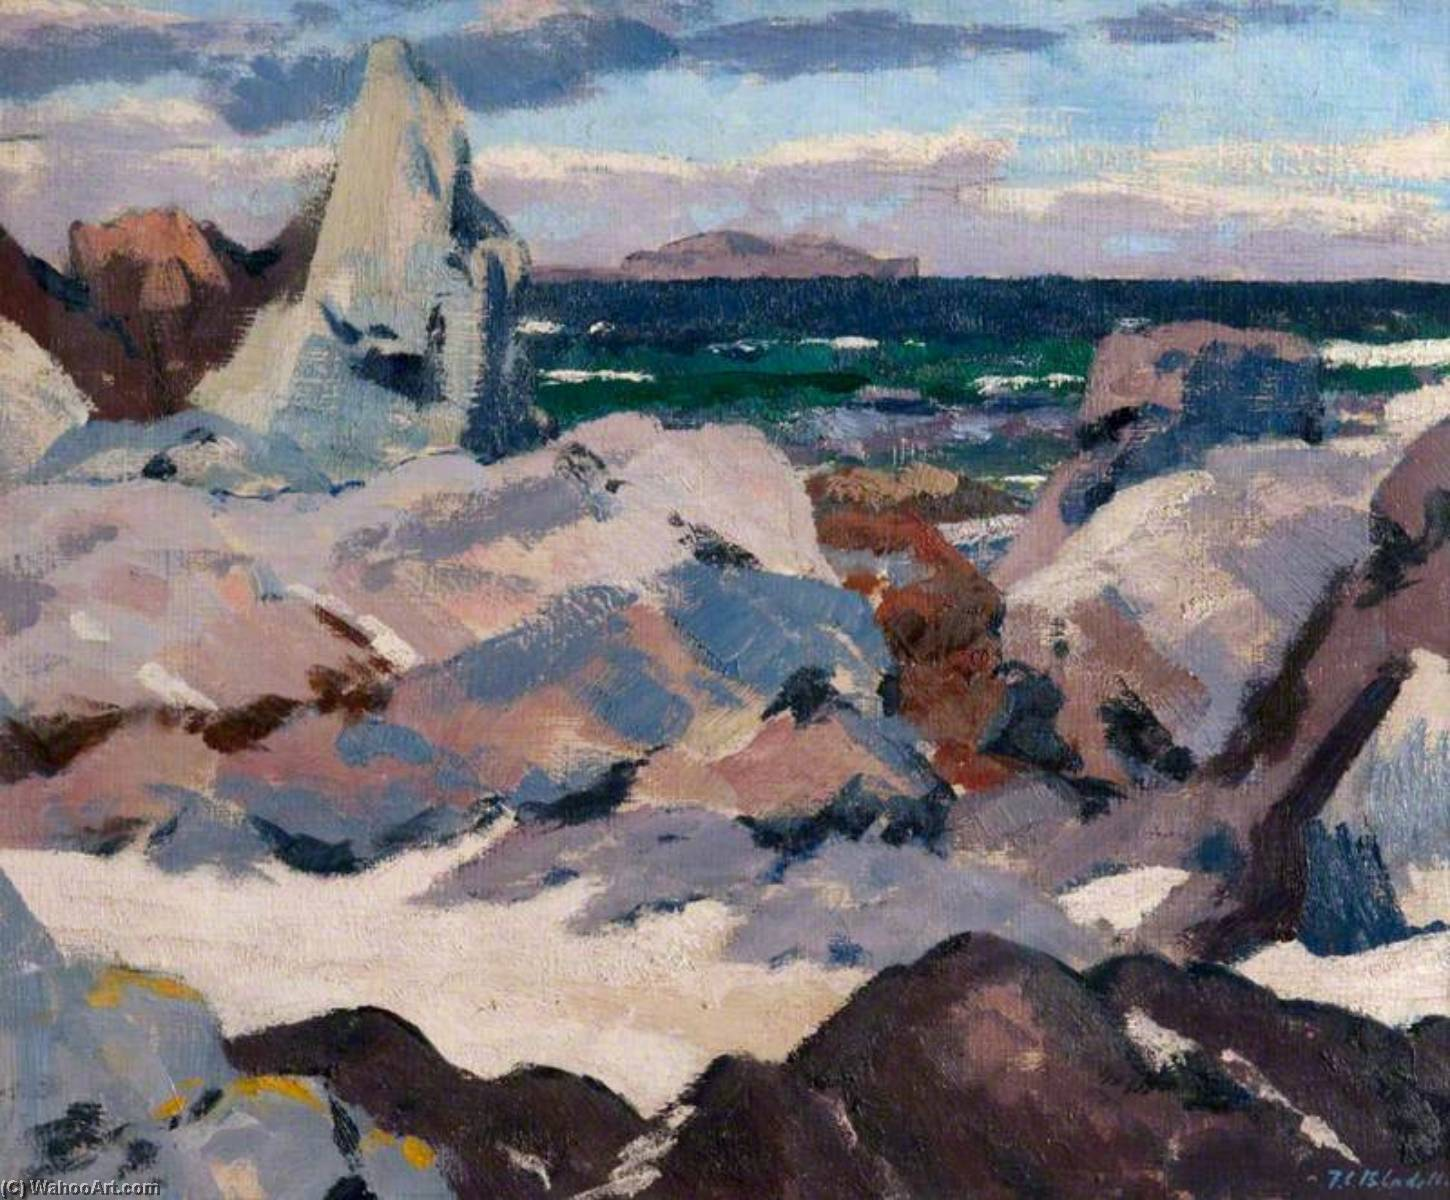 Order Art Reproduction : Lunga from Iona, 1928 by Francis Campbell Boileau Cadell (1883-1937) | WahooArt.com